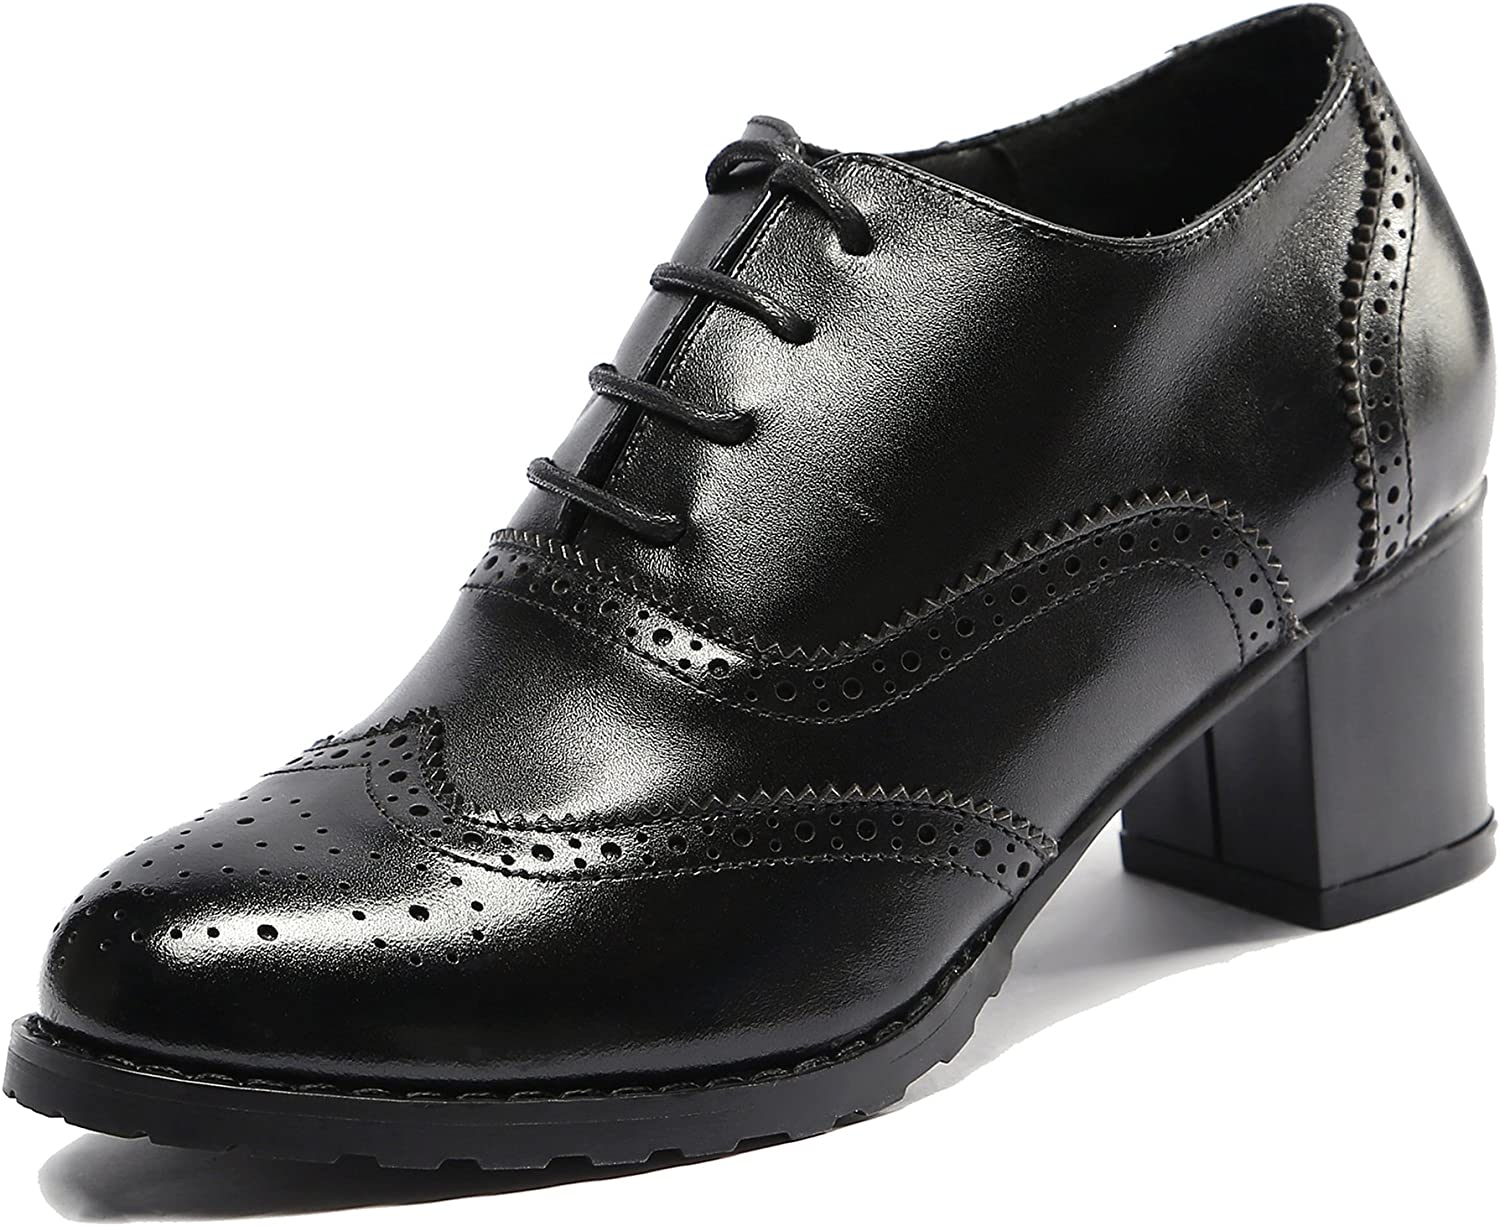 U-lite Womens Perforated Sales of SALE items from new works Lace-up New sales Wingtip Pump Oxfords Vi Leather